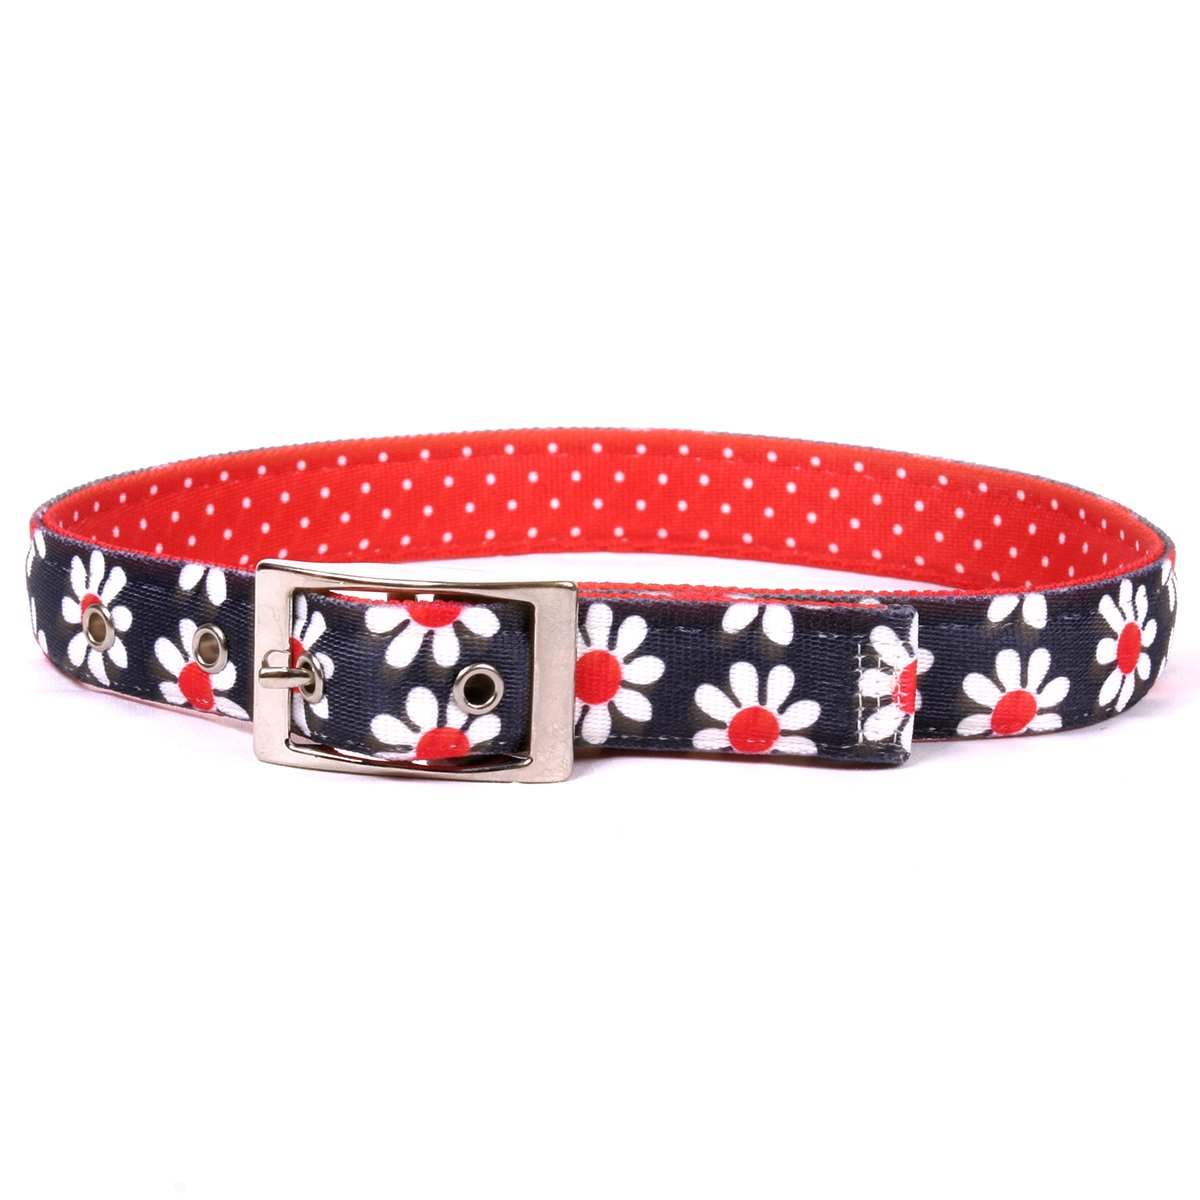 Yellow Dog Design Black Daisy Uptown Dog Collar Fits Neck 24 to 27'', X-Large/1'' Wide